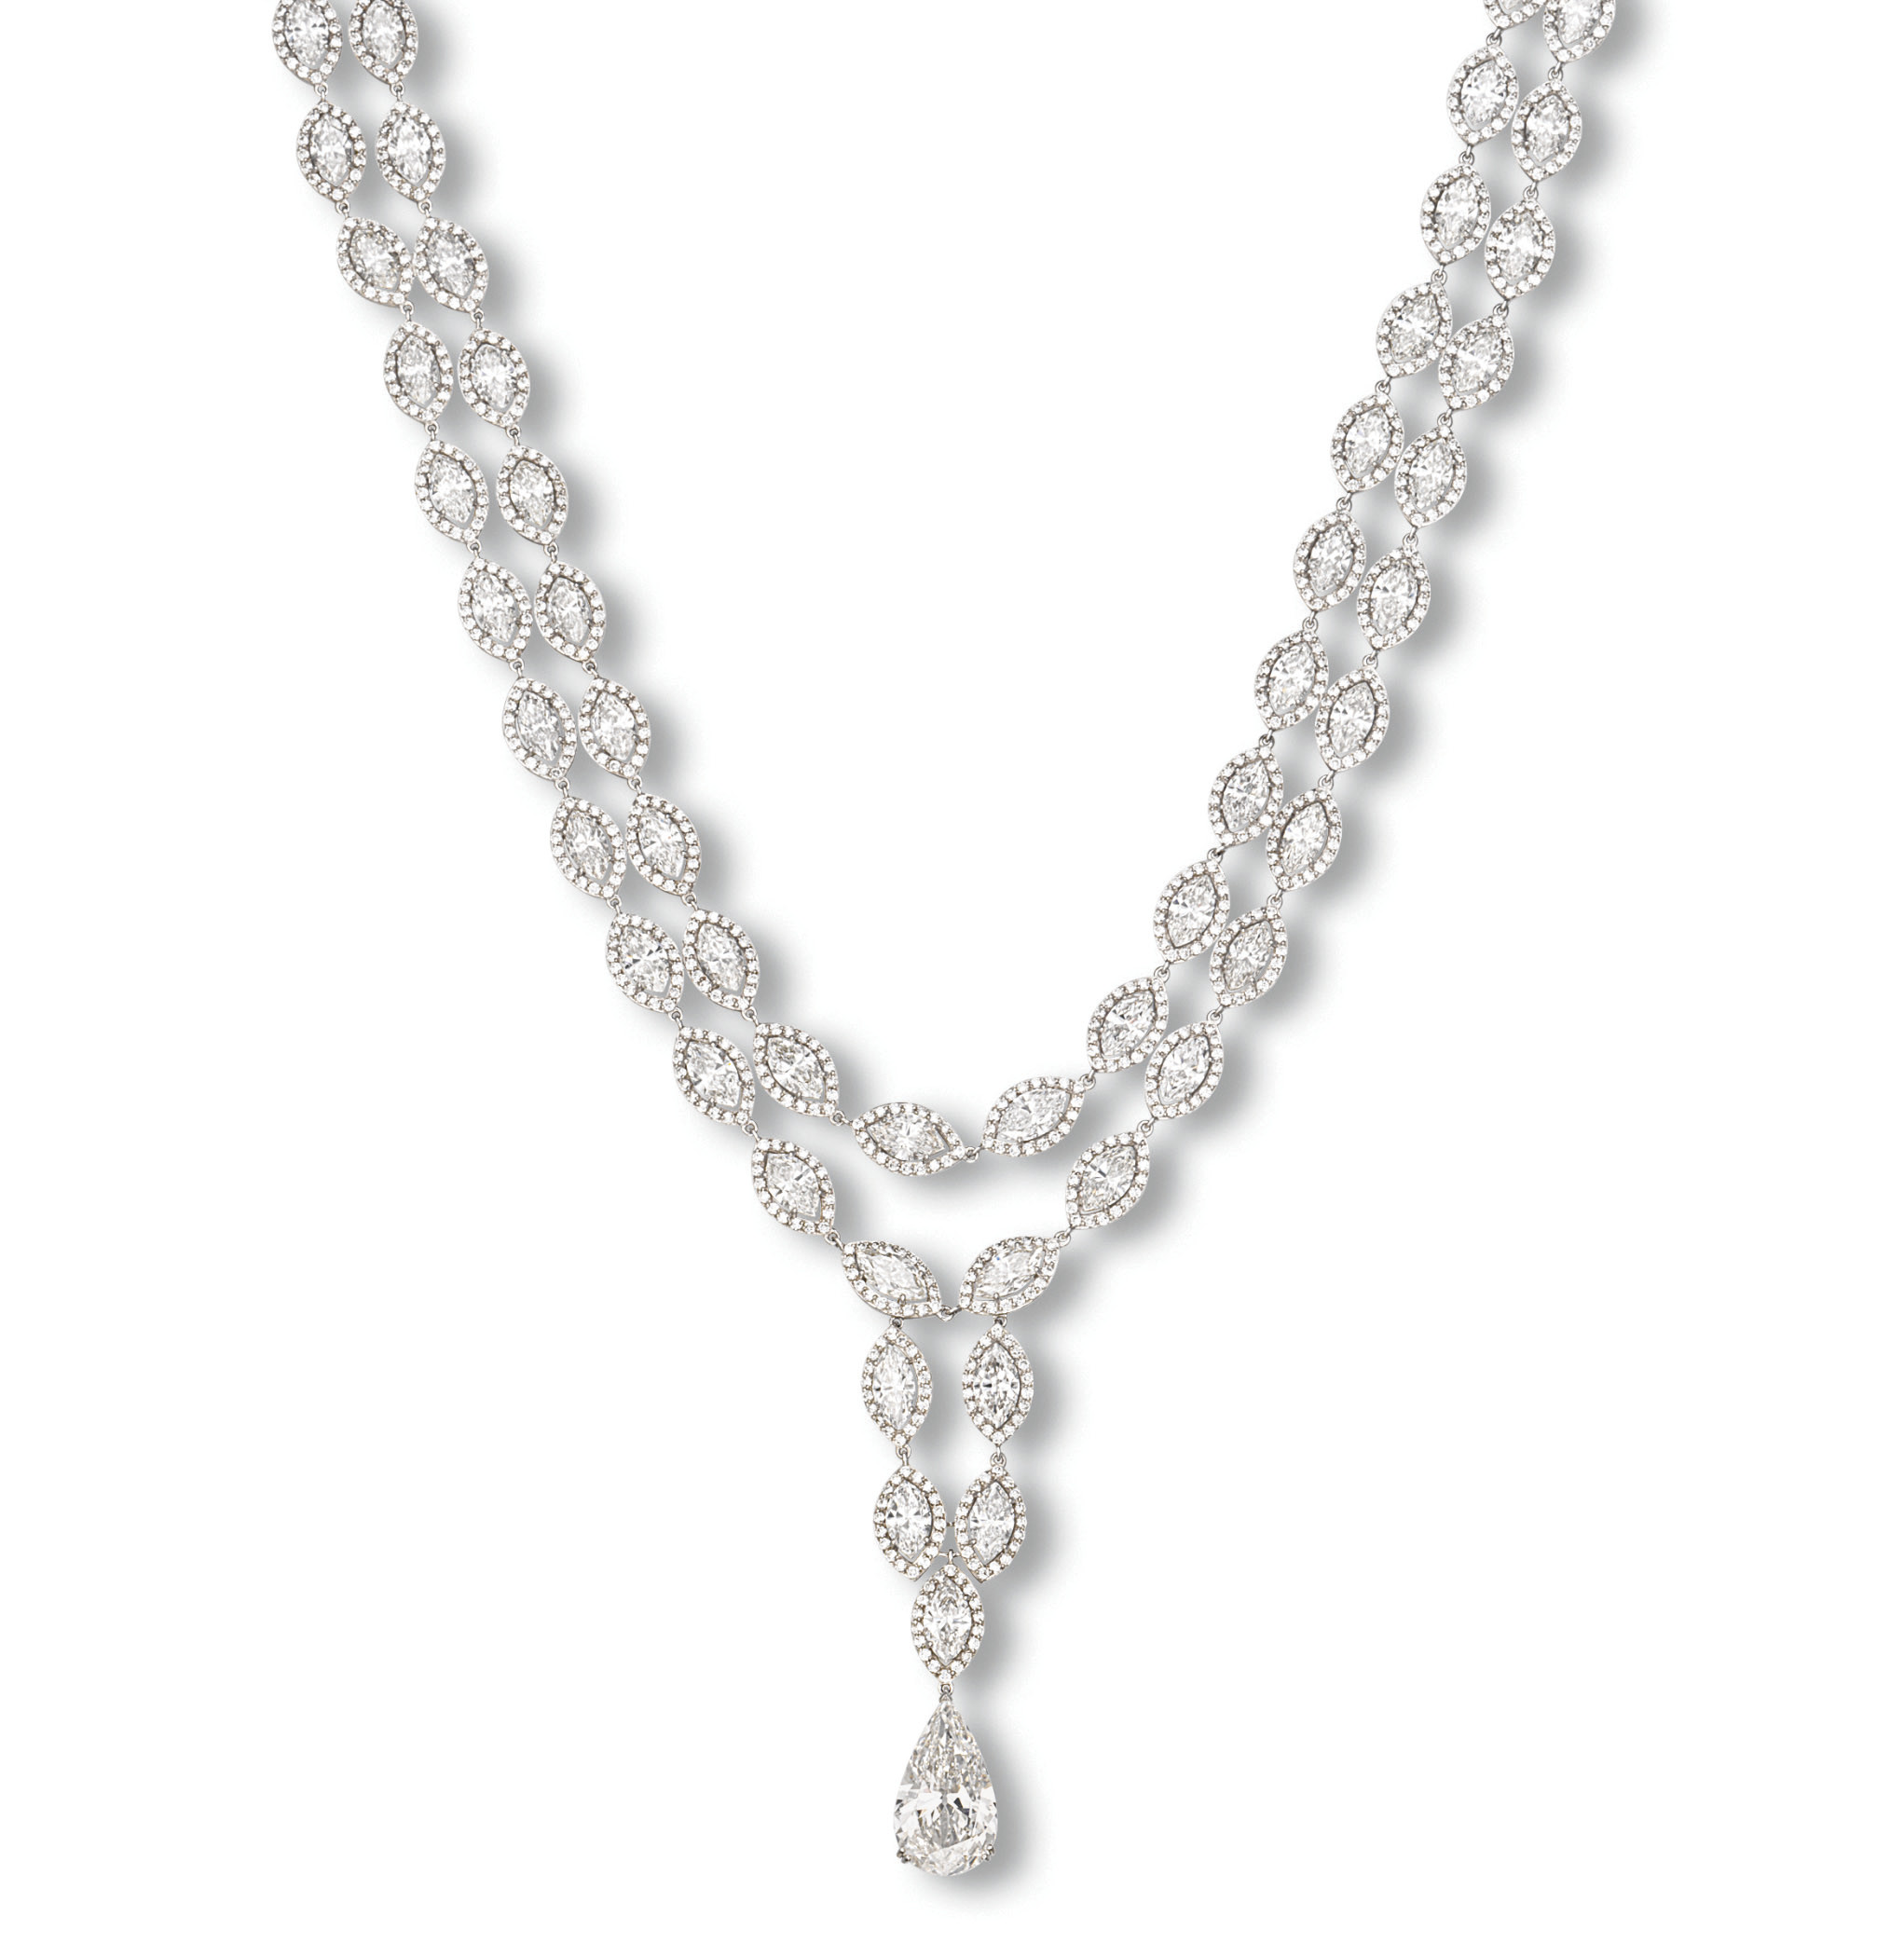 A TWO-STRAND DIAMOND NECKLACE